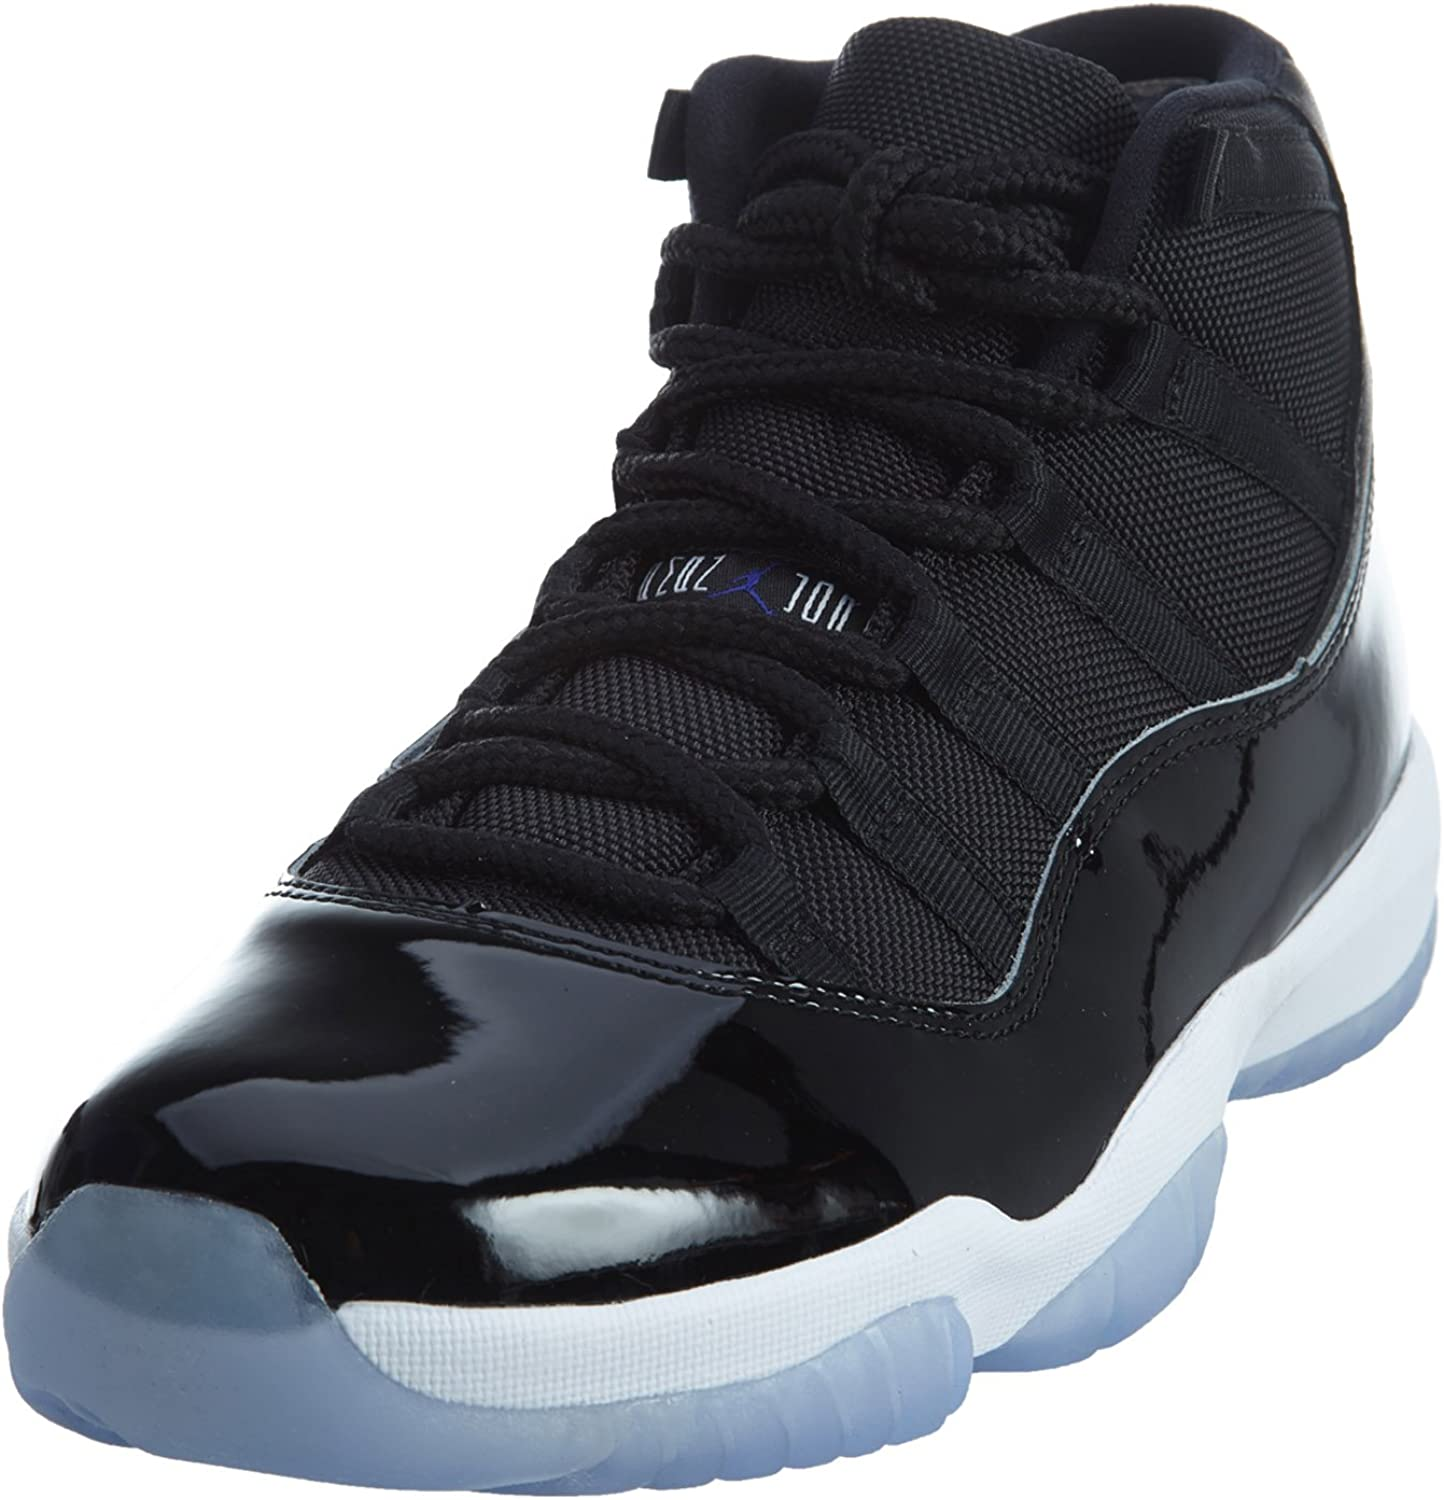 AIR JORDAN - エアジョーダン - AIR JORDAN 11 RETRO 'SPACE JAM 2016 RELEASE' - 378037-003 - SIZE 16 (メンズ)